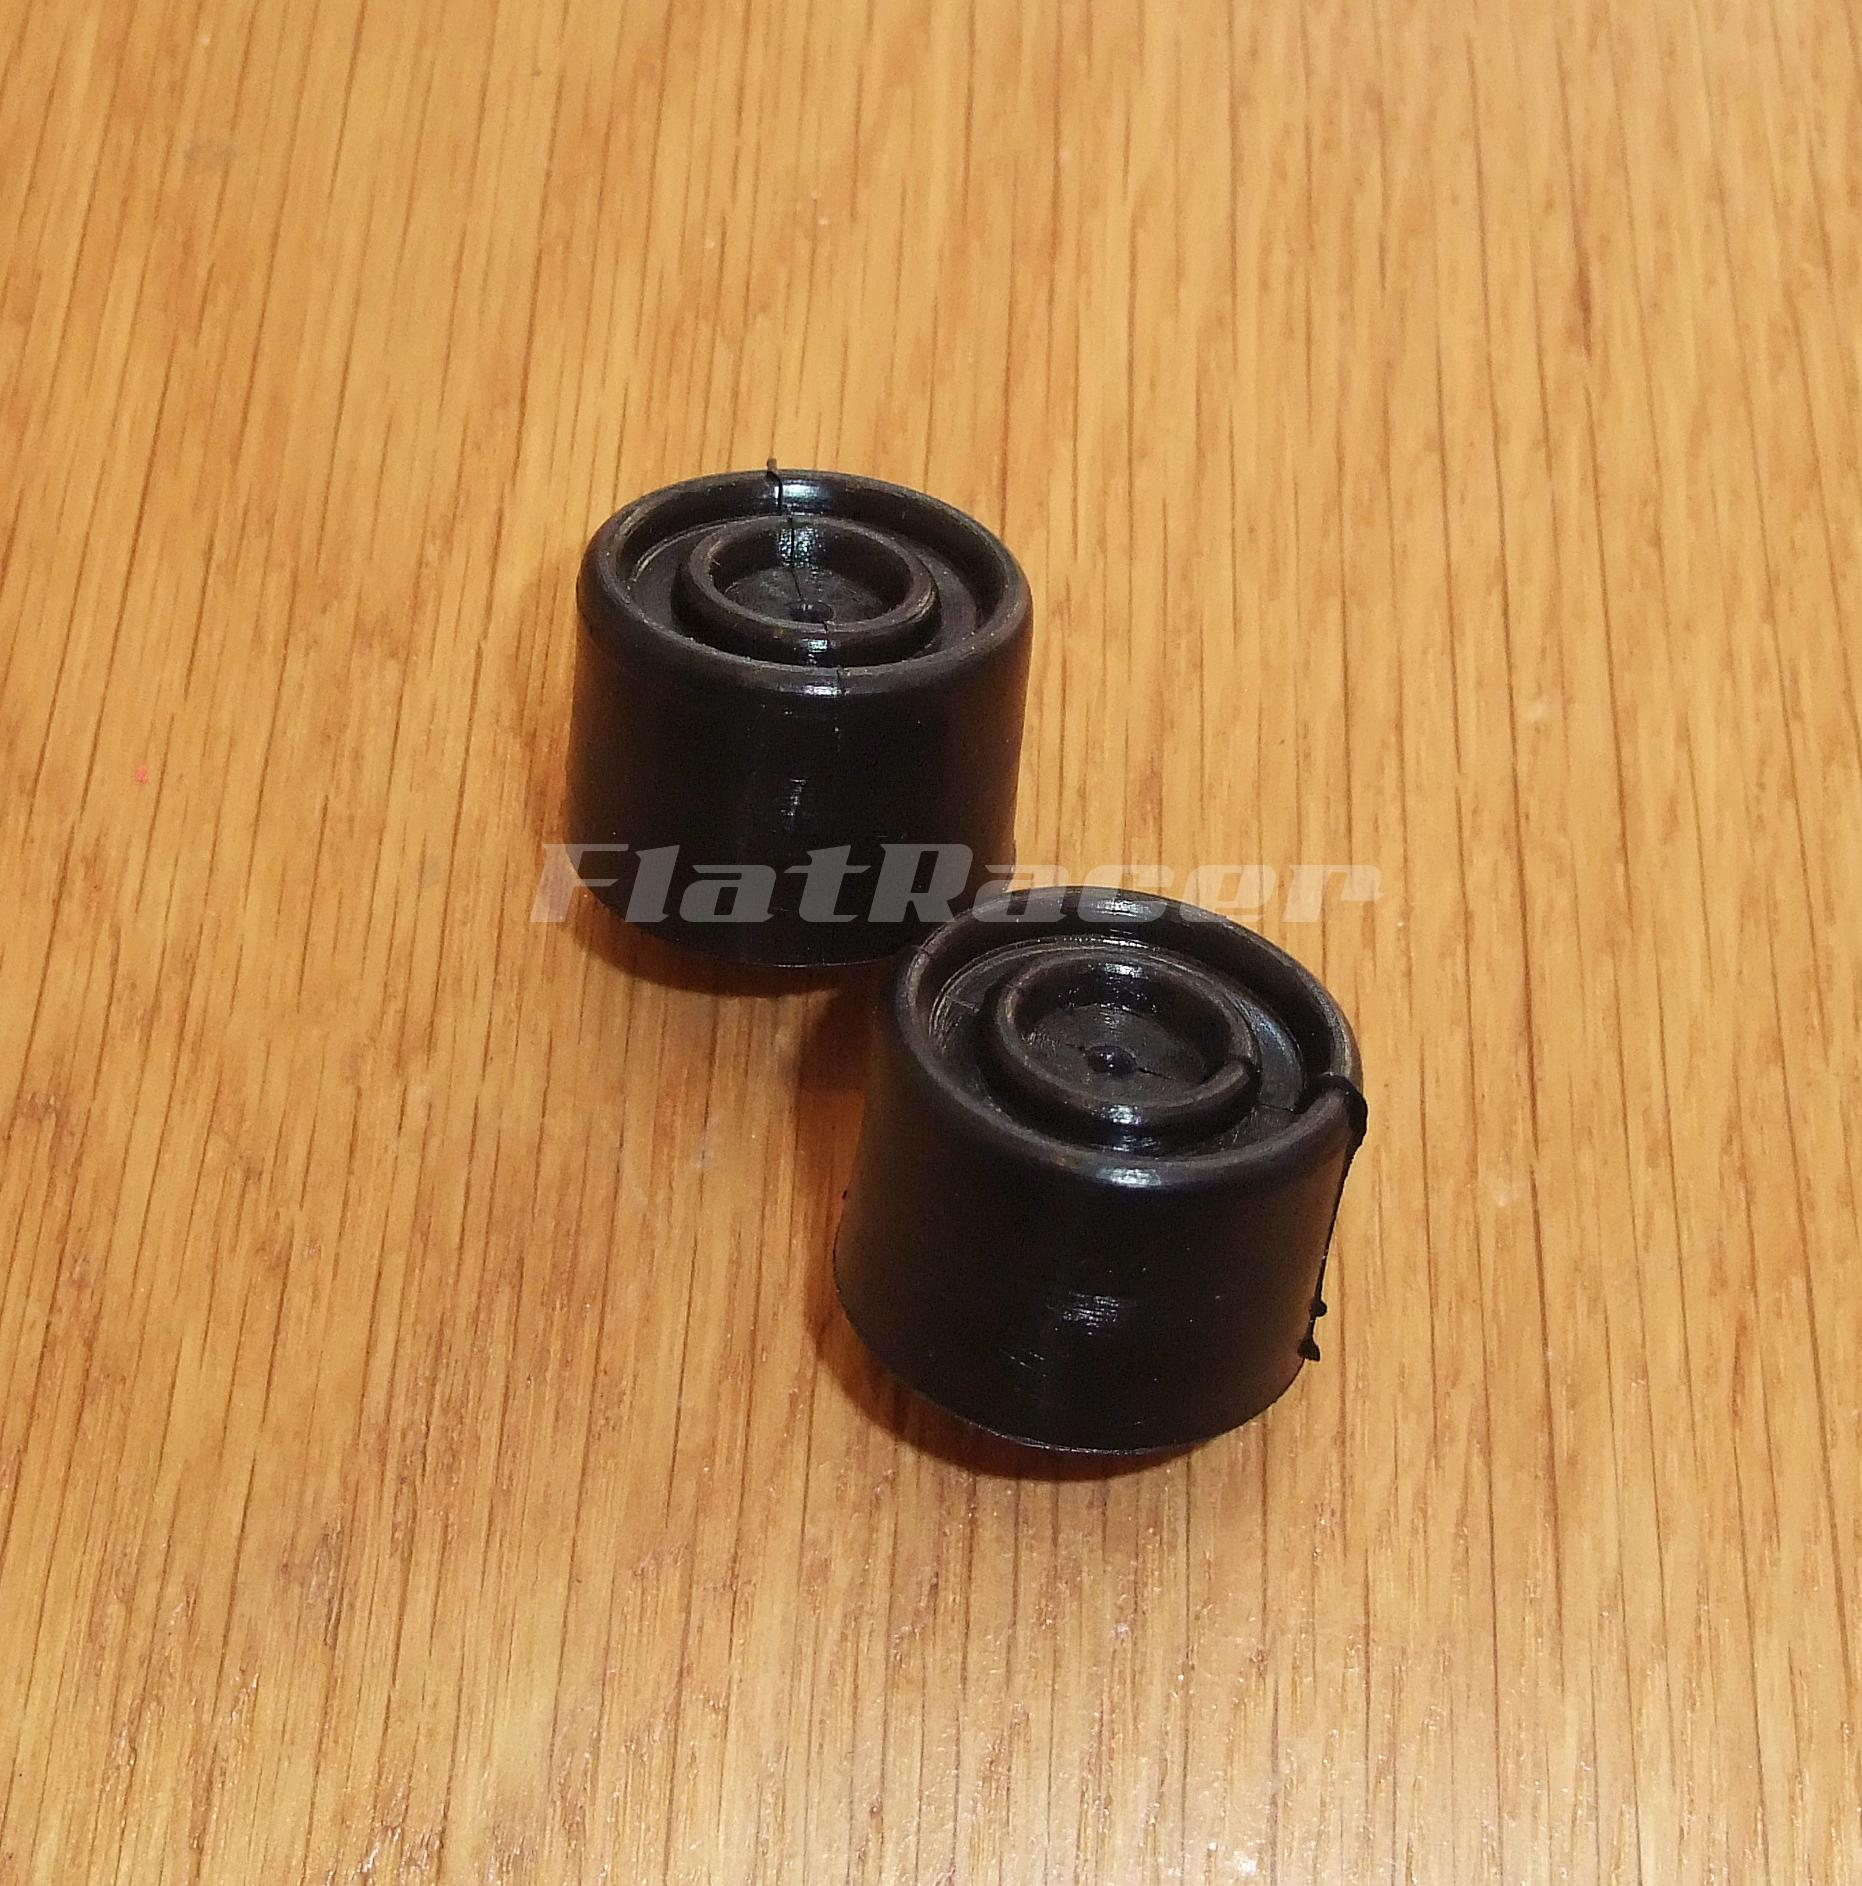 FlatRacer seat rubber buffer stops (pair) - 25 W x 16.5 H x 9mm hole